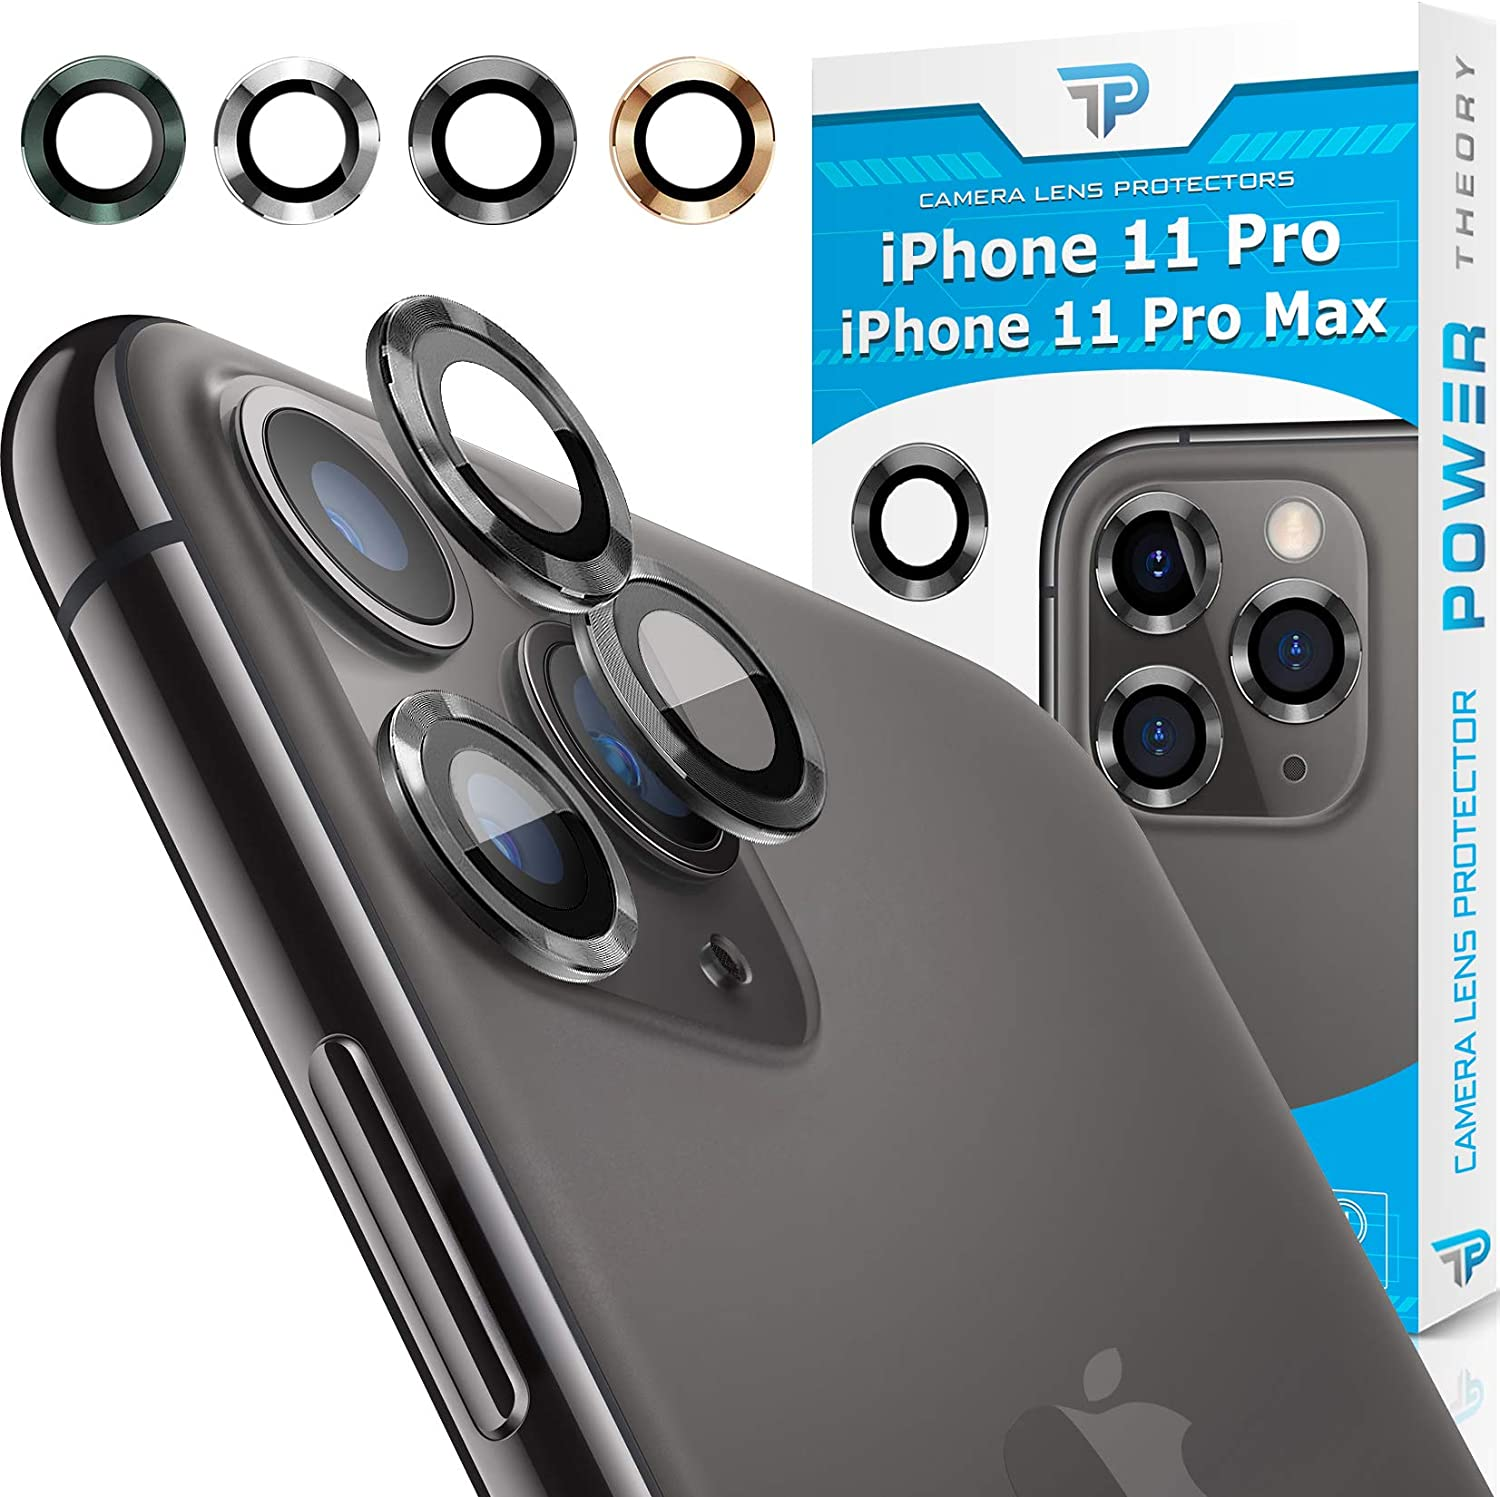 Power Theory iPhone 11 Pro & iPhone 11 Pro Max Camera Lens Protector - Easy Installation [Premium Tempered Glass] [Space Gray]